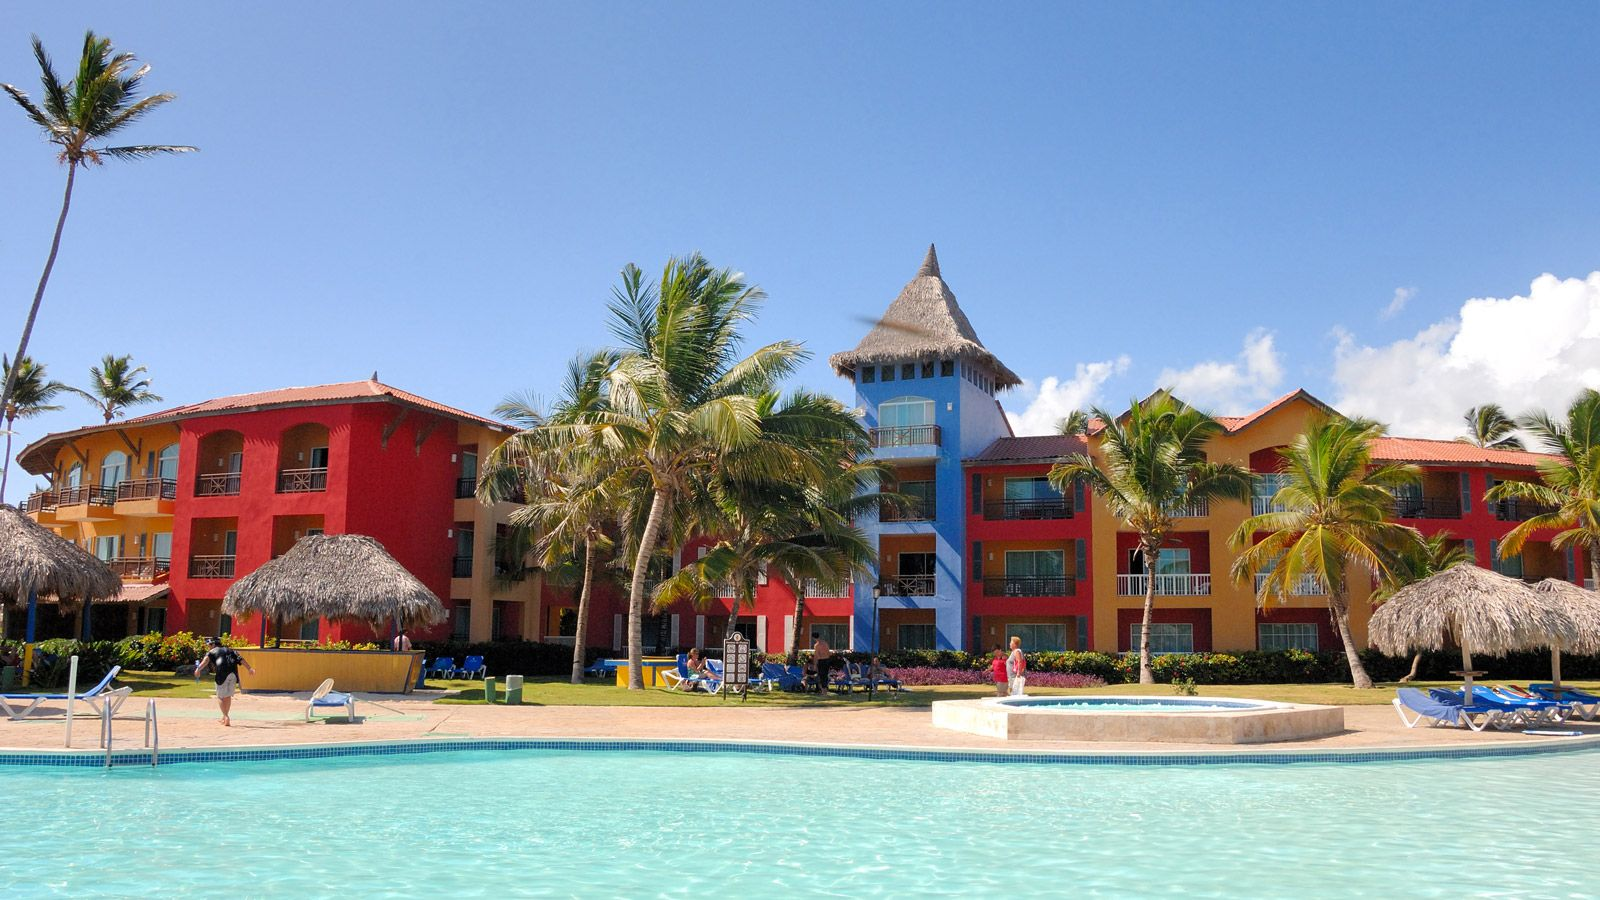 Tropical princess beach resort spa pool princesshotels · beach resortsresort spapunta cana hotelsall inclusivedominican